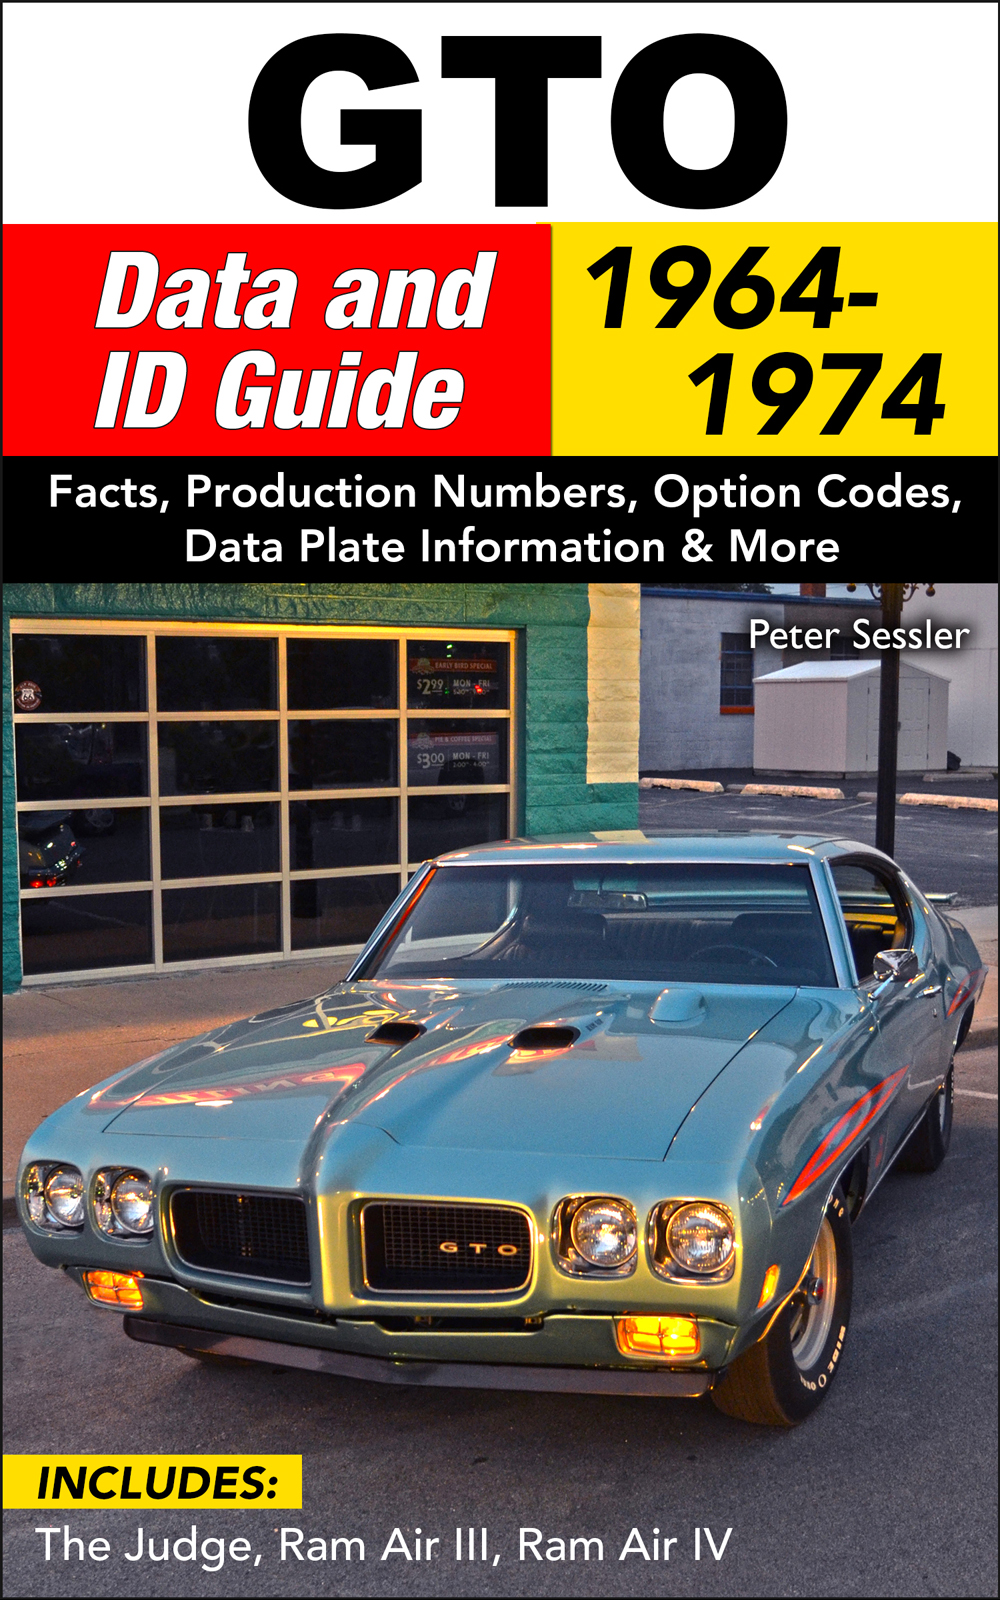 1964-1974 Pontiac GTO Data and ID Guide